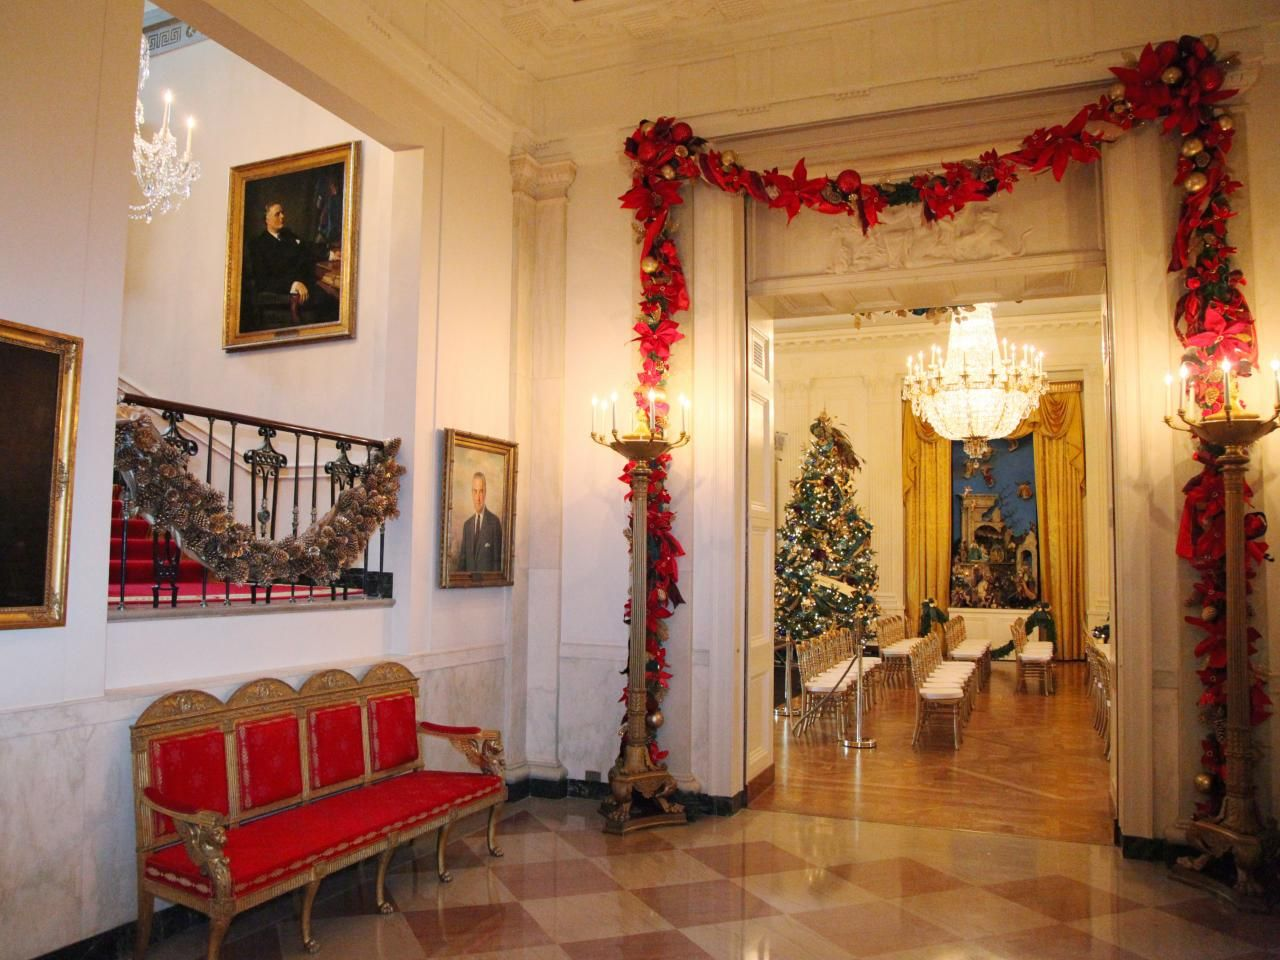 Festive Garlands Decorate The Entrance To The East Room. The Stairway Leads  To The Private